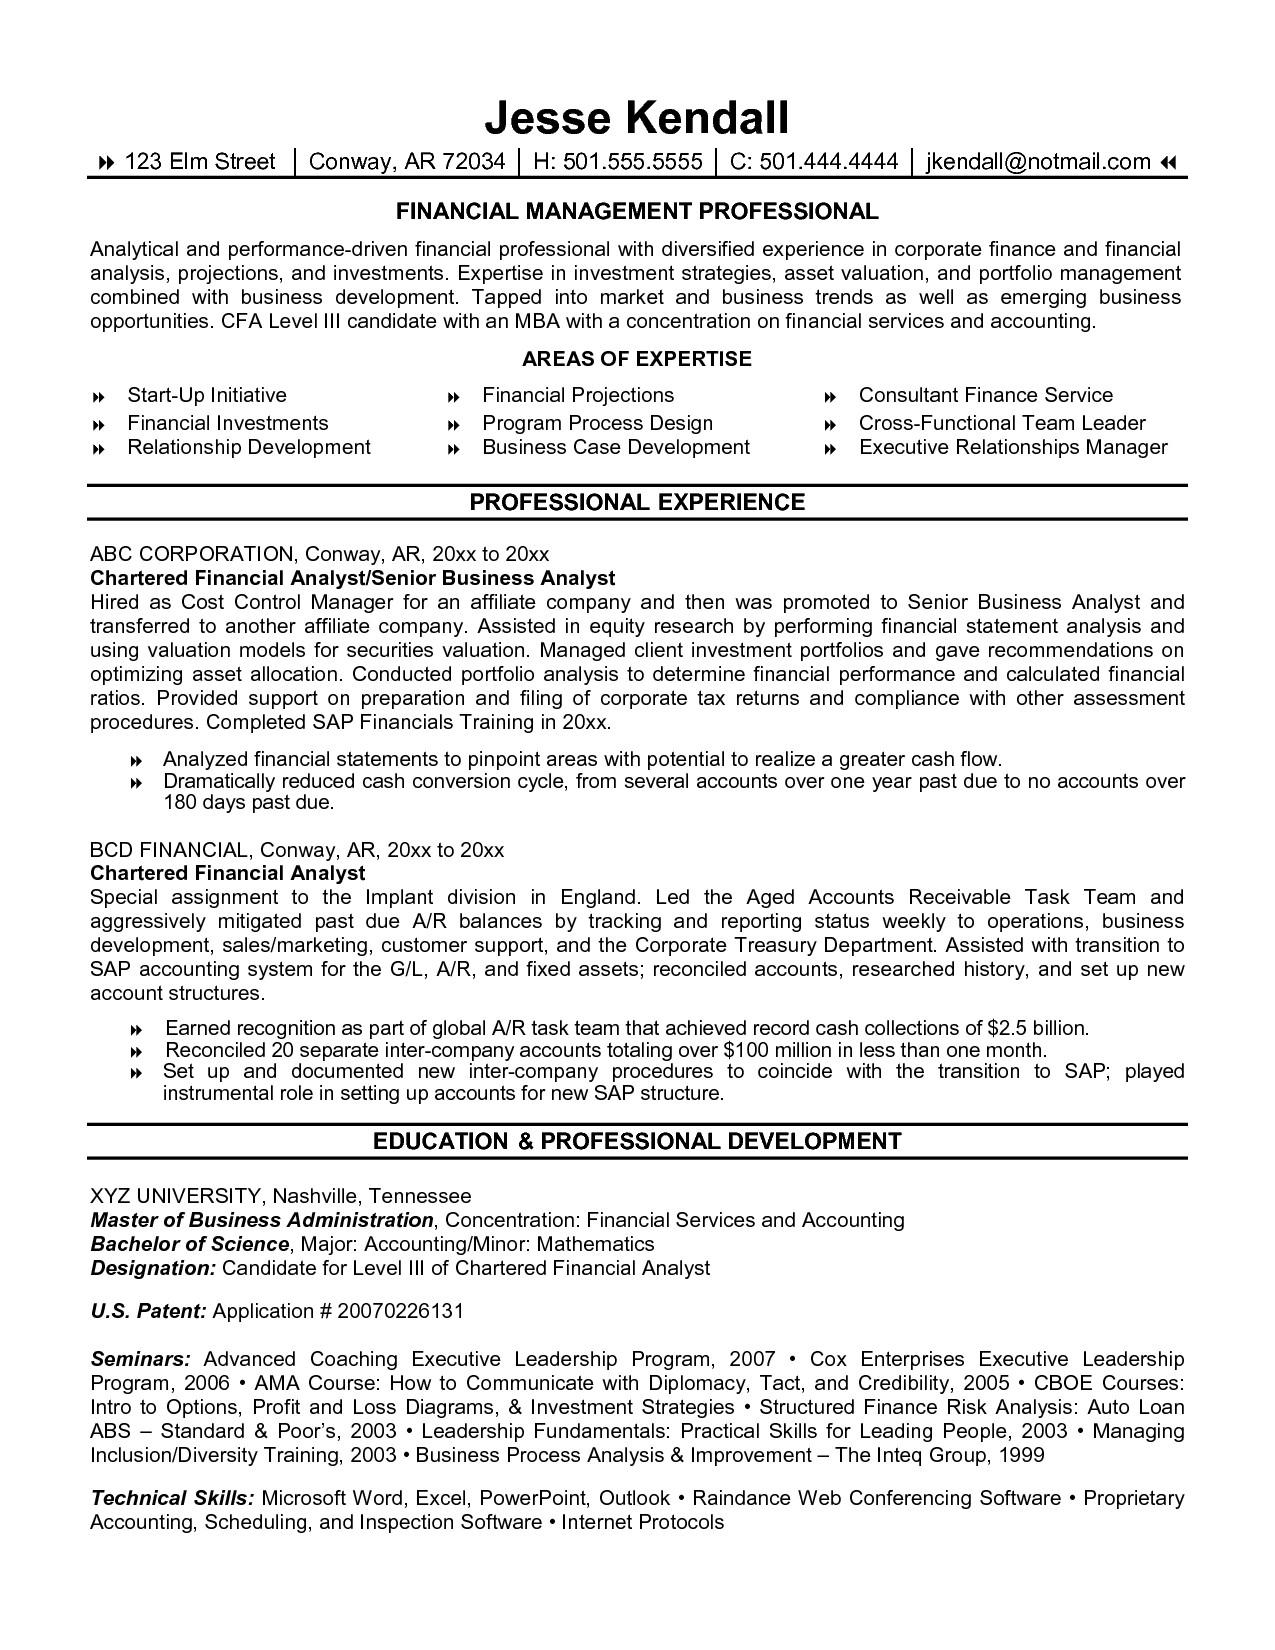 resume financial analyst best format amazing finance examples livecareer